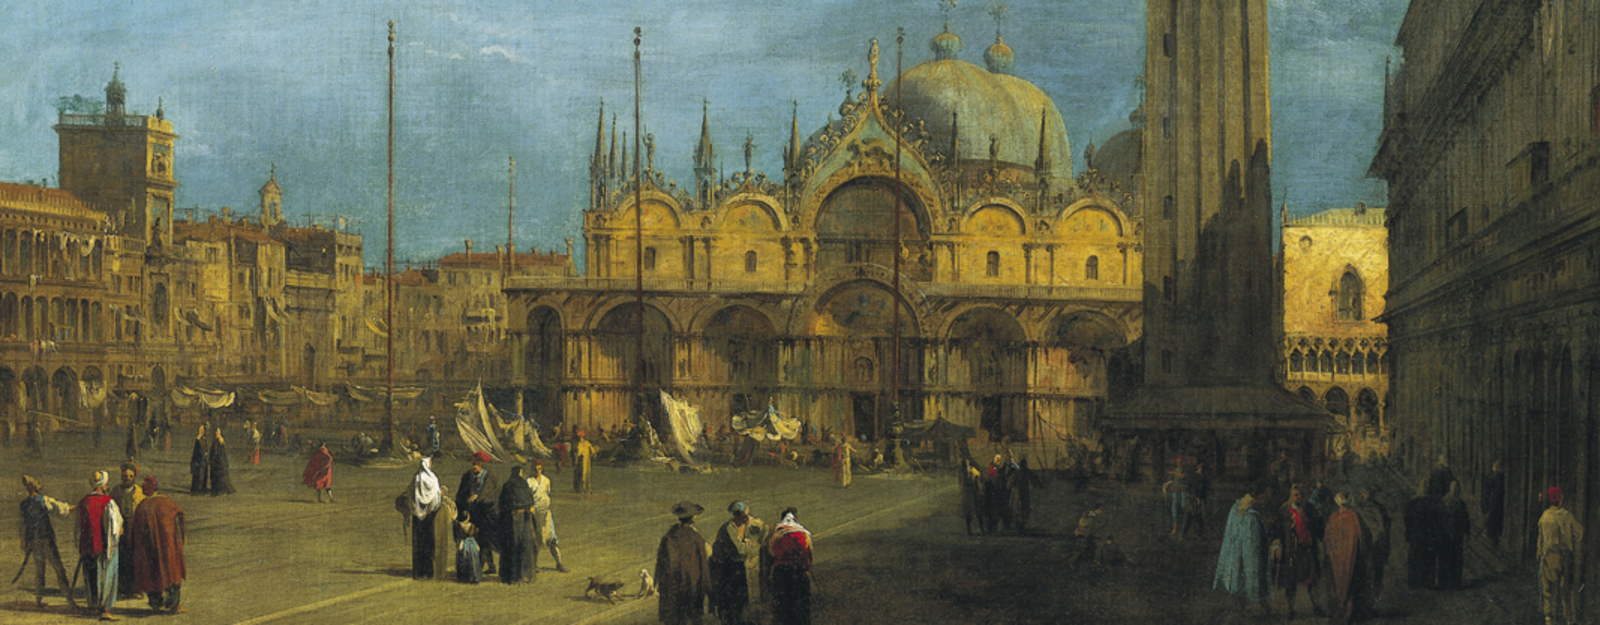 Painting by Canaletto - Piazza S. Marco with the Basilica and Campanile